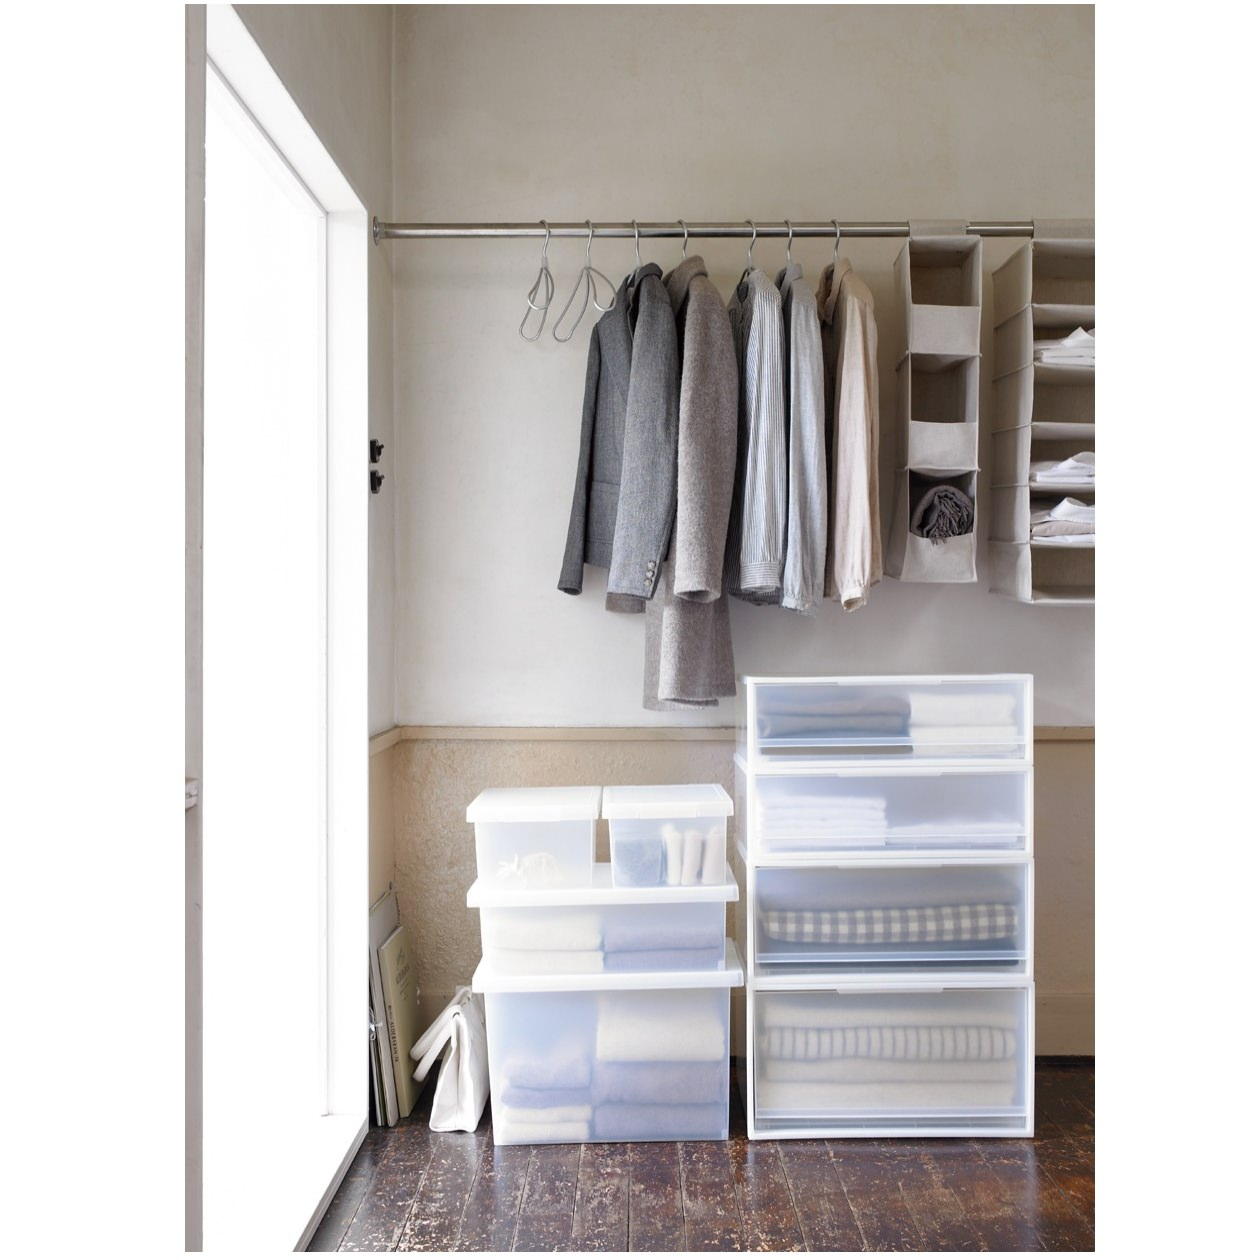 Box Room Wardrobe Muji Online Welcome To The Muji Online Store